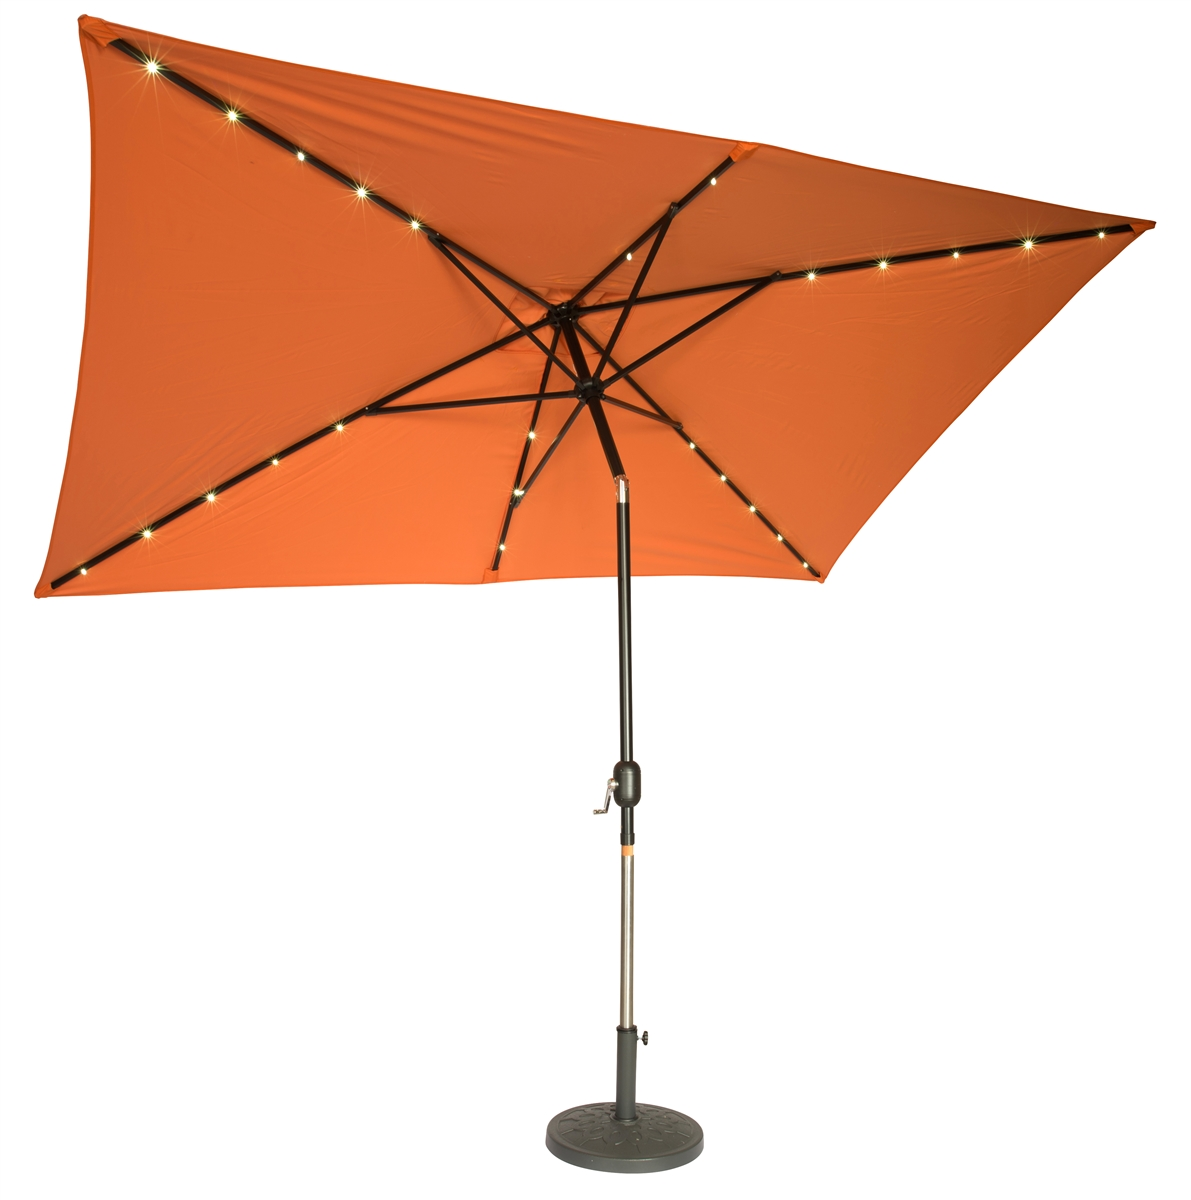 10u0027 X 6.5u0027 Rectangular Solar Powered LED Lighted Patio Umbrella By  Trademark Innovations (Orange)